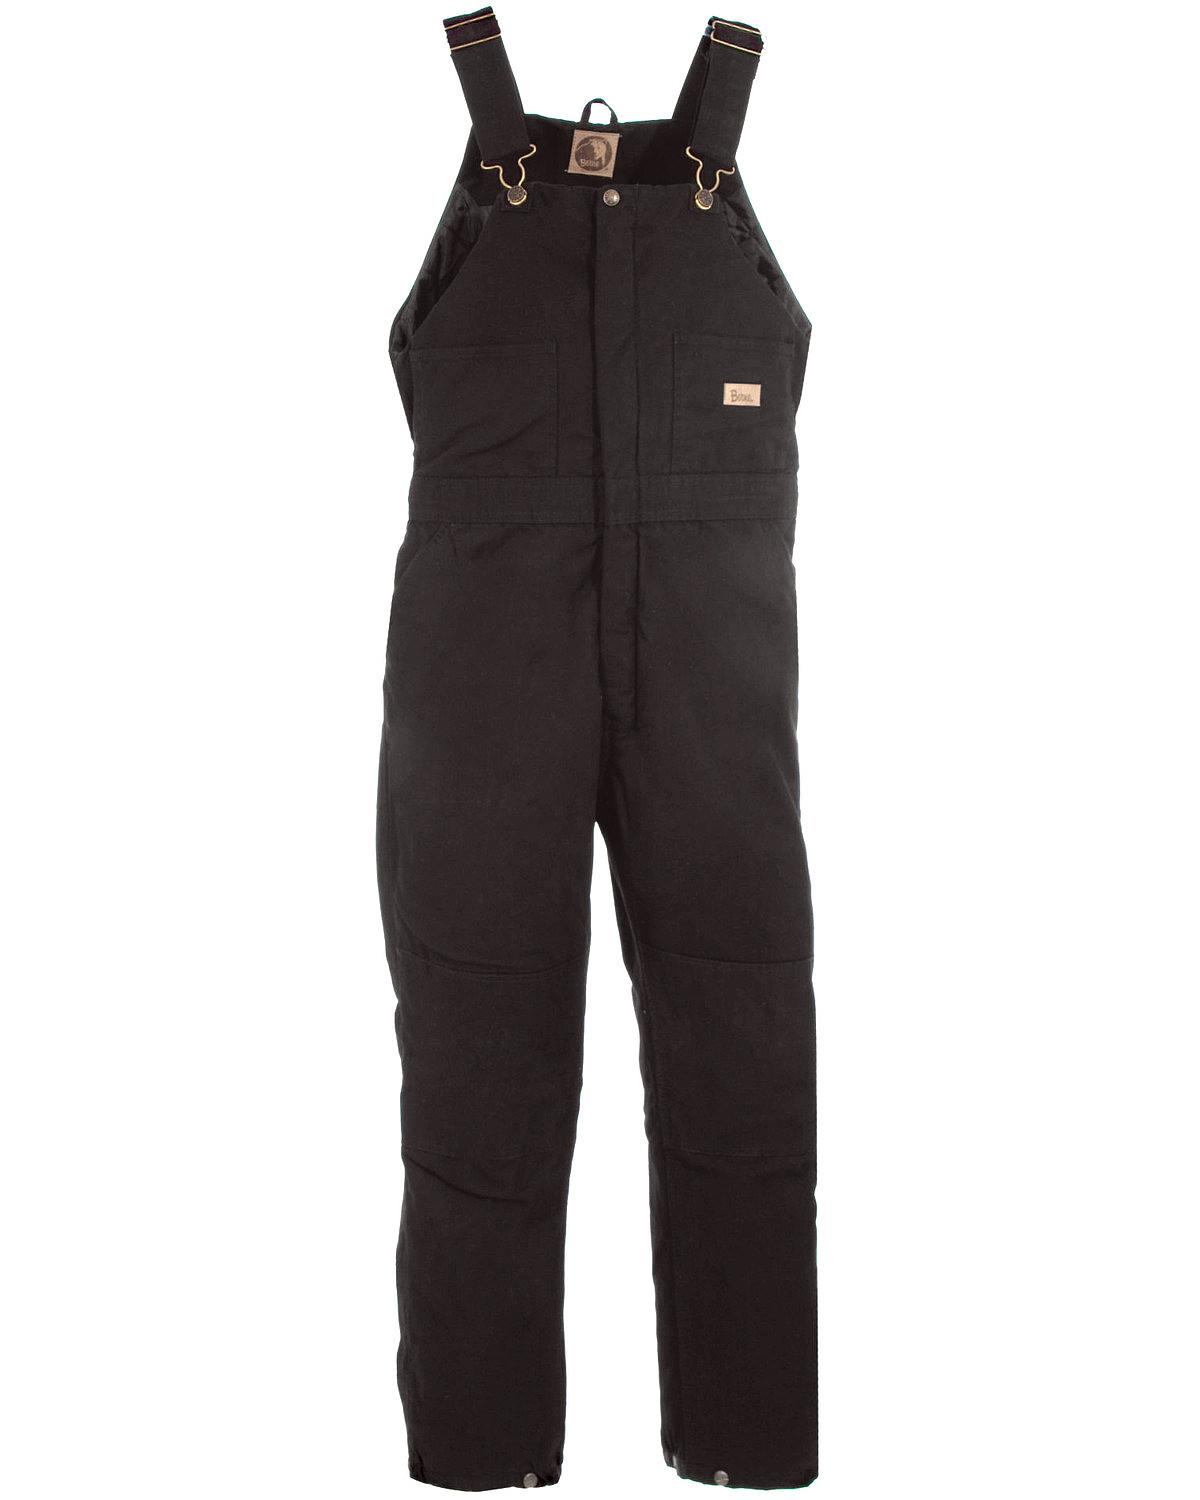 Berne Women's Washed Insulated Bib Overalls Regular ...